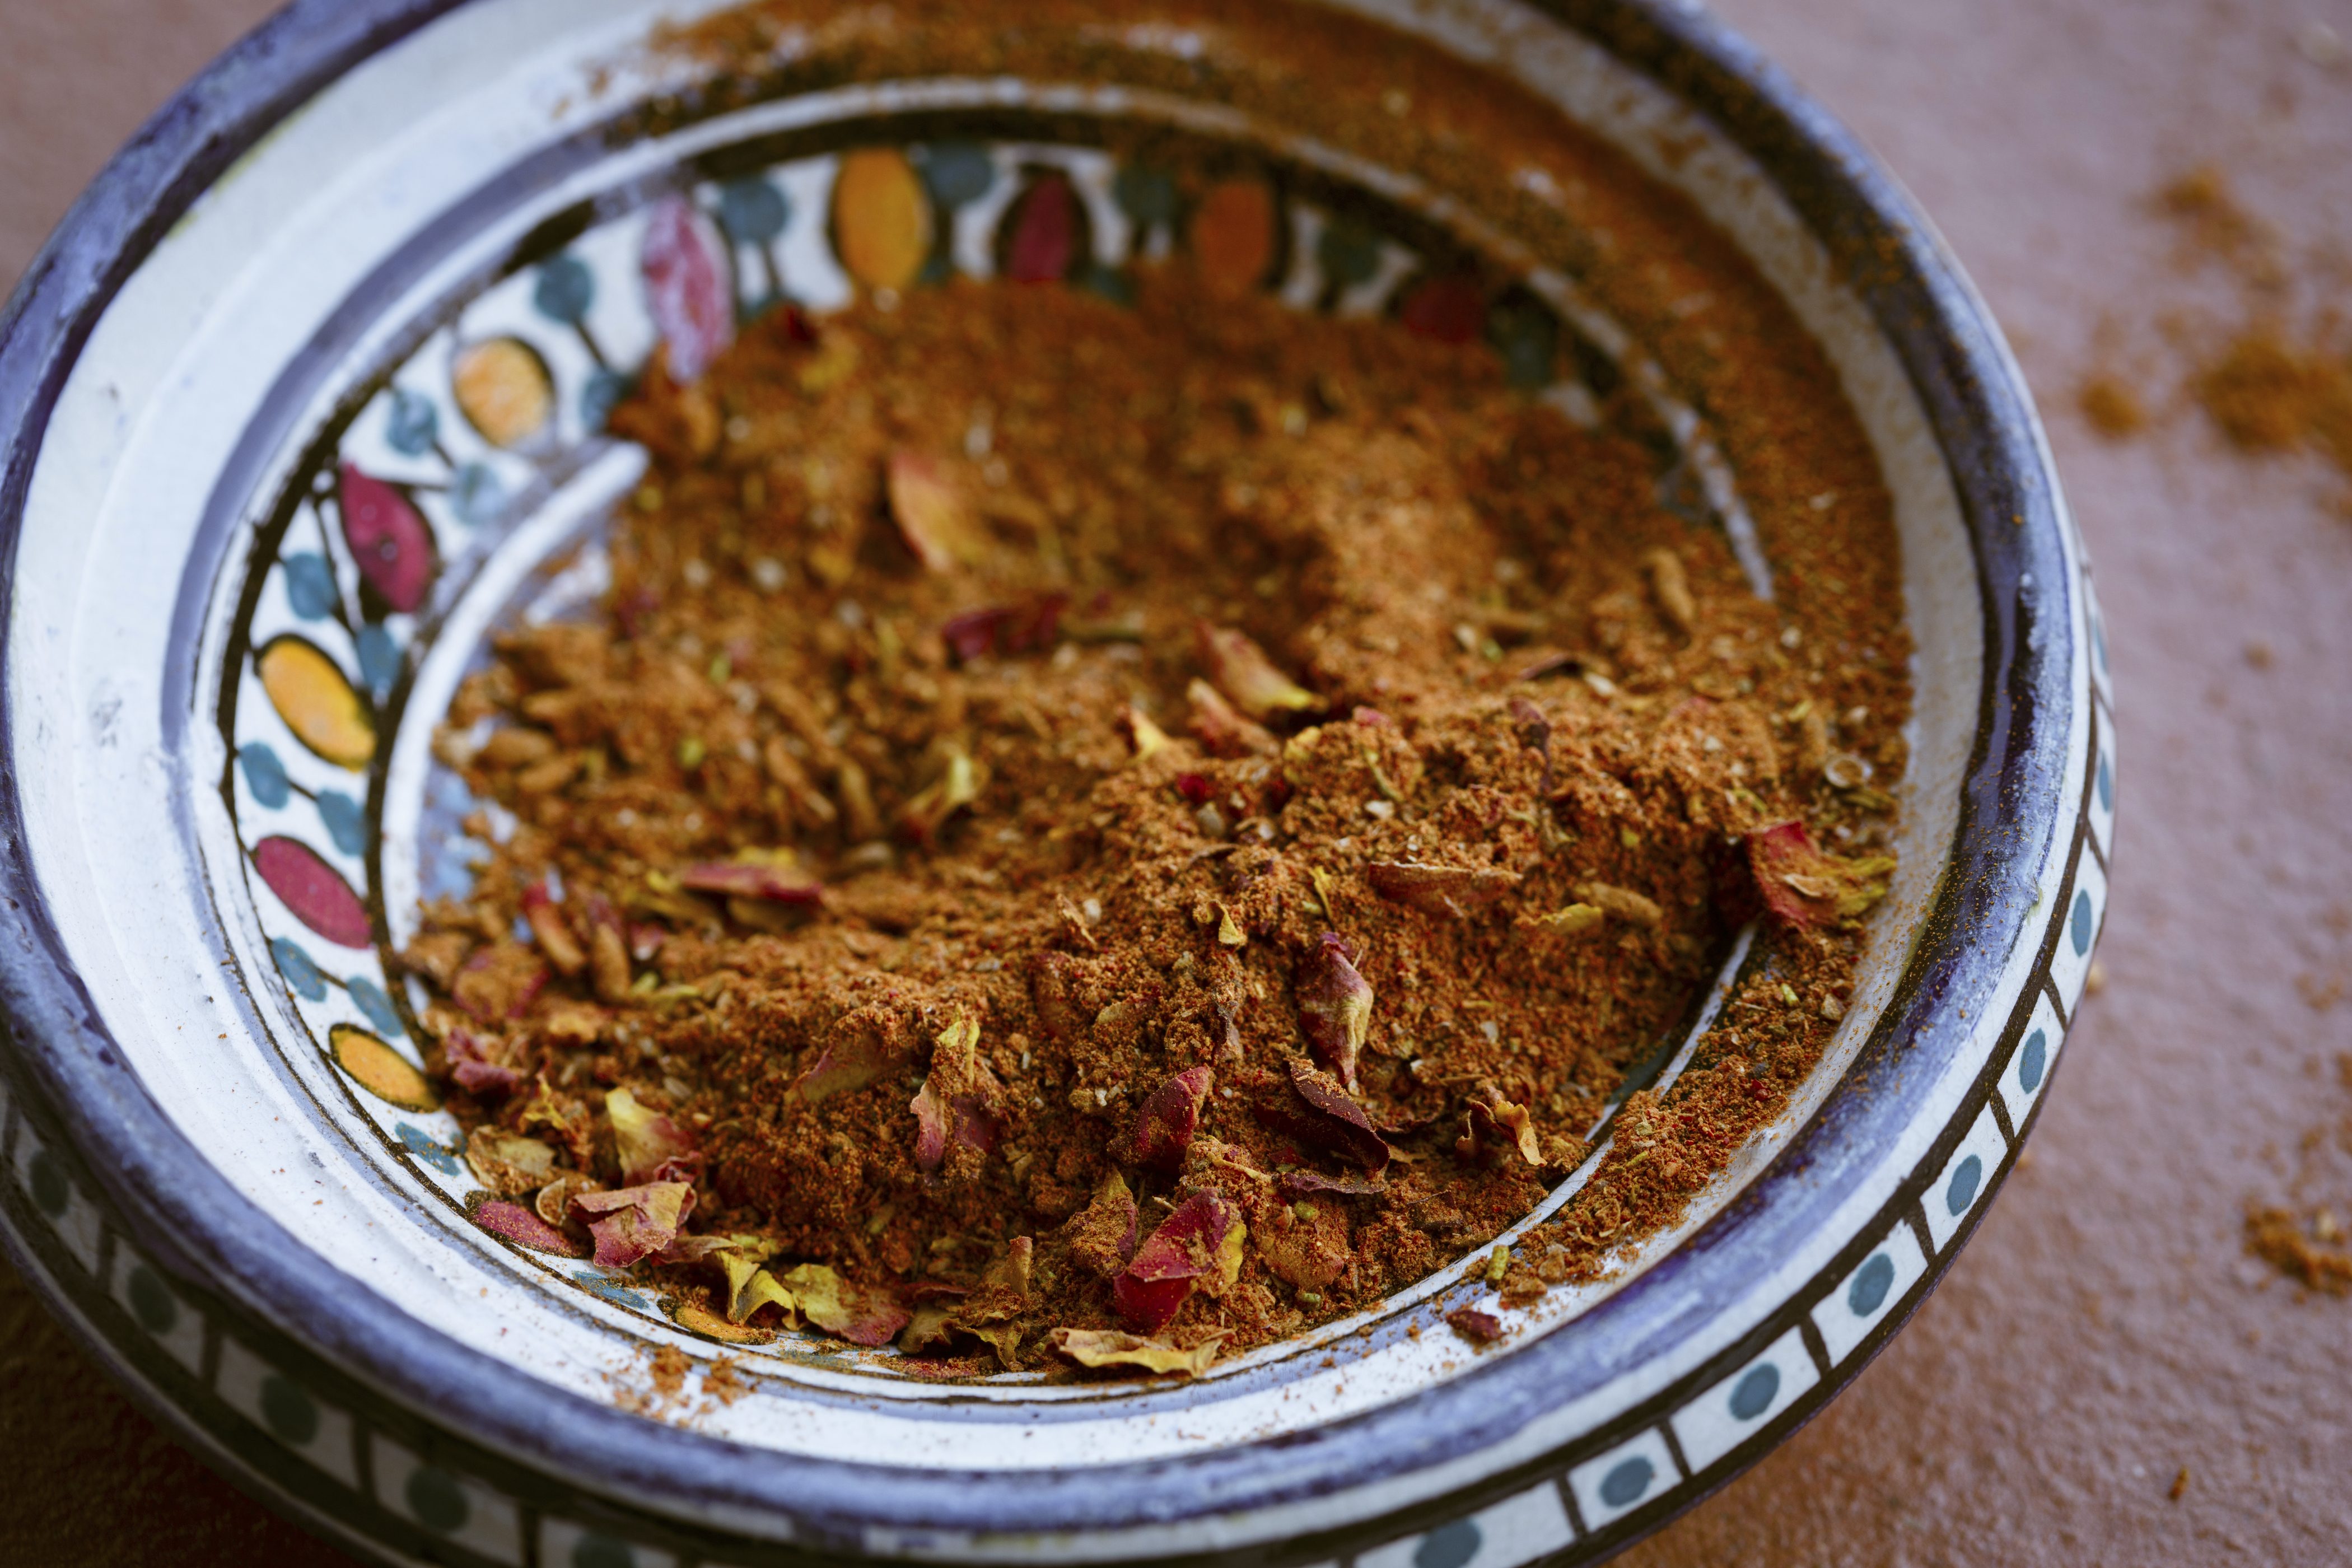 Ras el hanout, a spice mix from North Africa